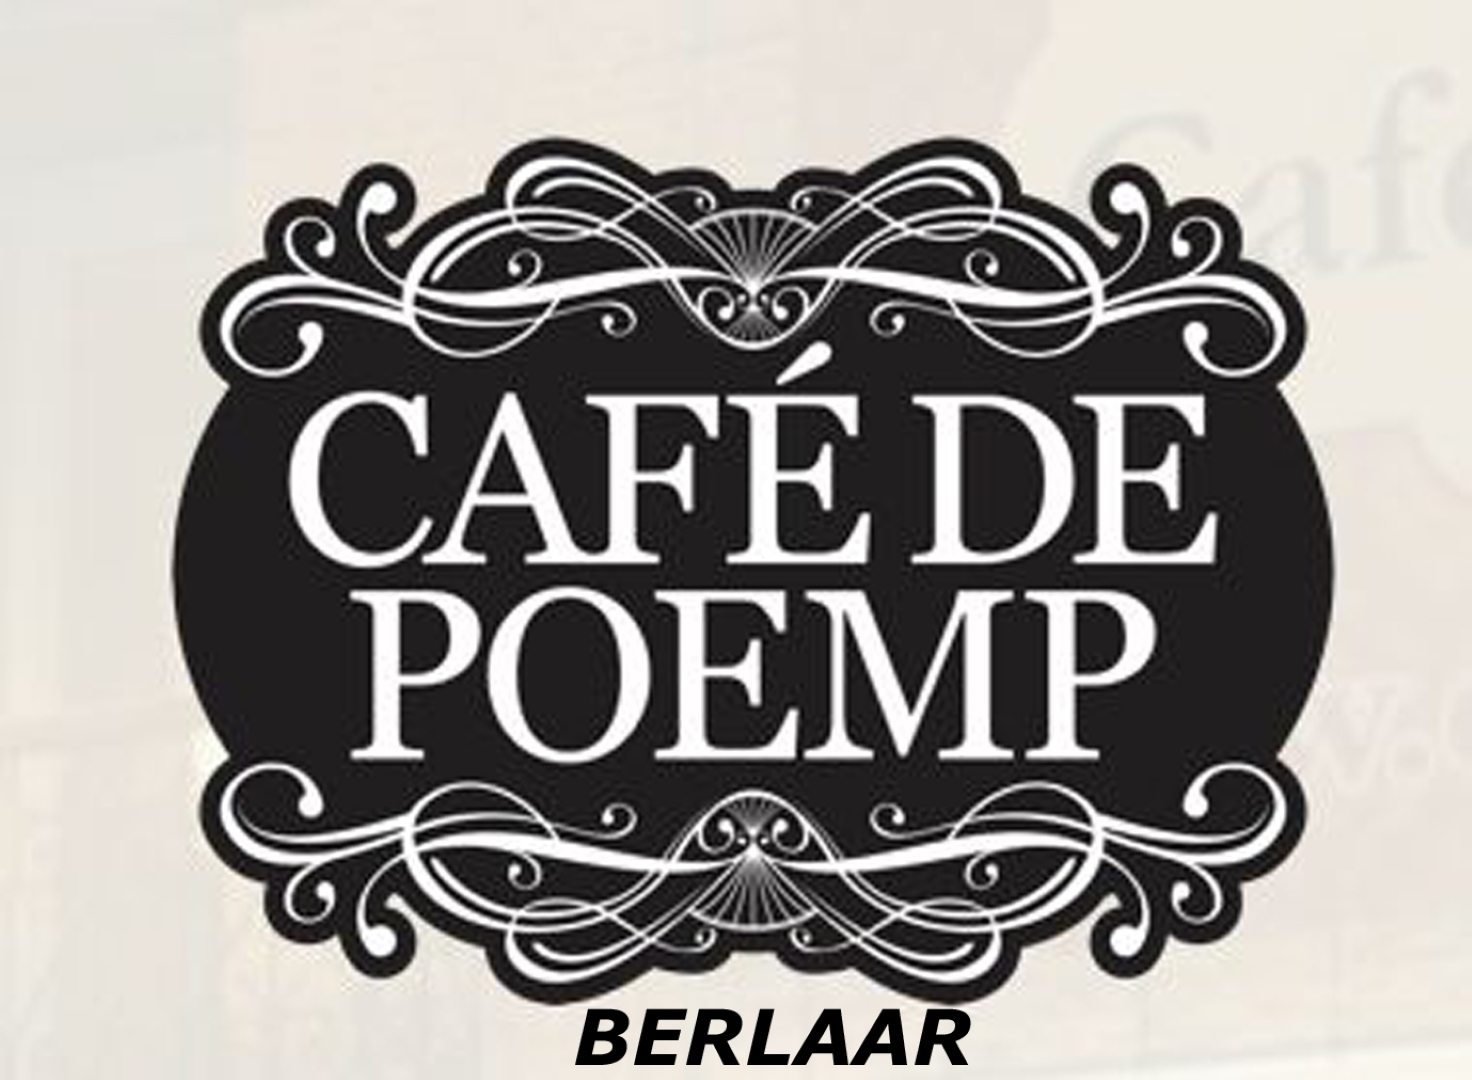 cafe de poemp.jpg